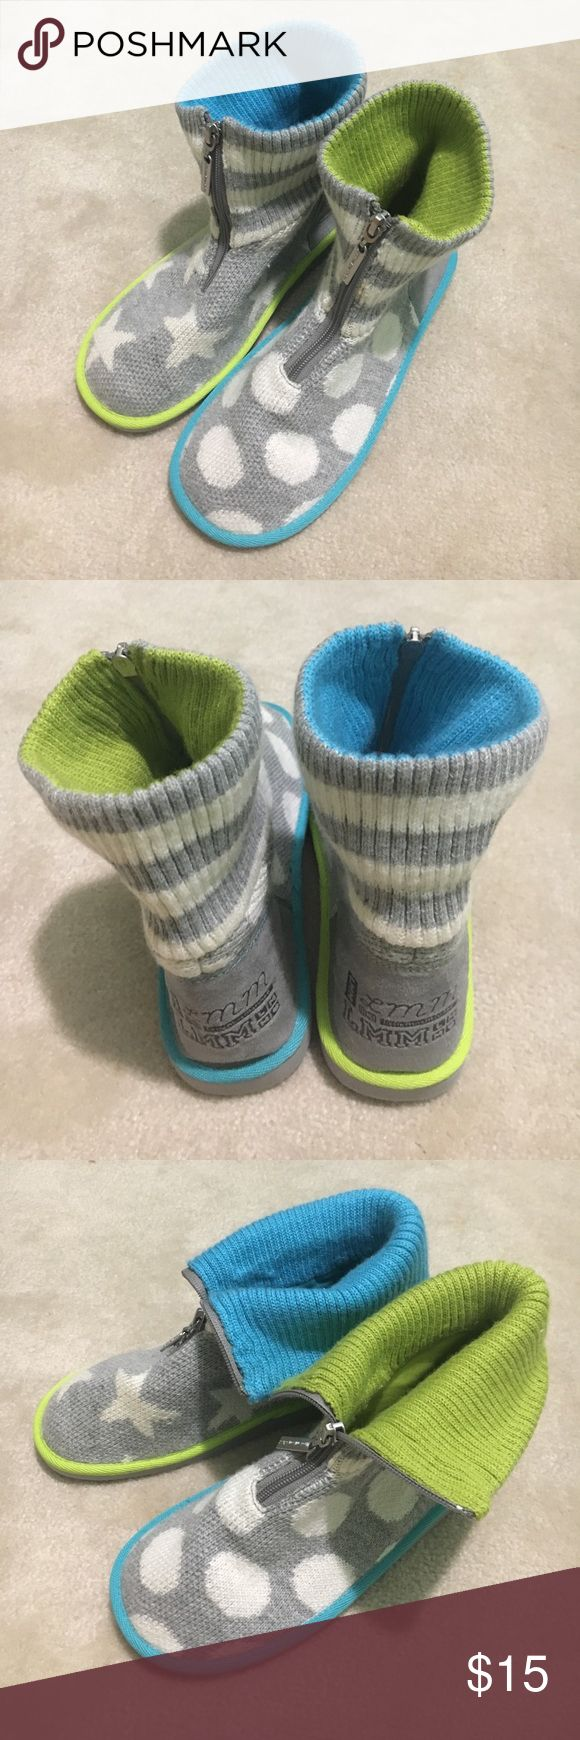 Little Miss Matched Sweater boot slippers Brand new, never worn sweater boot slippers by Little Miss Matched. Can be worn zipped up or folded over. Fits size 7-8. Little Miss Matched Shoes Slippers